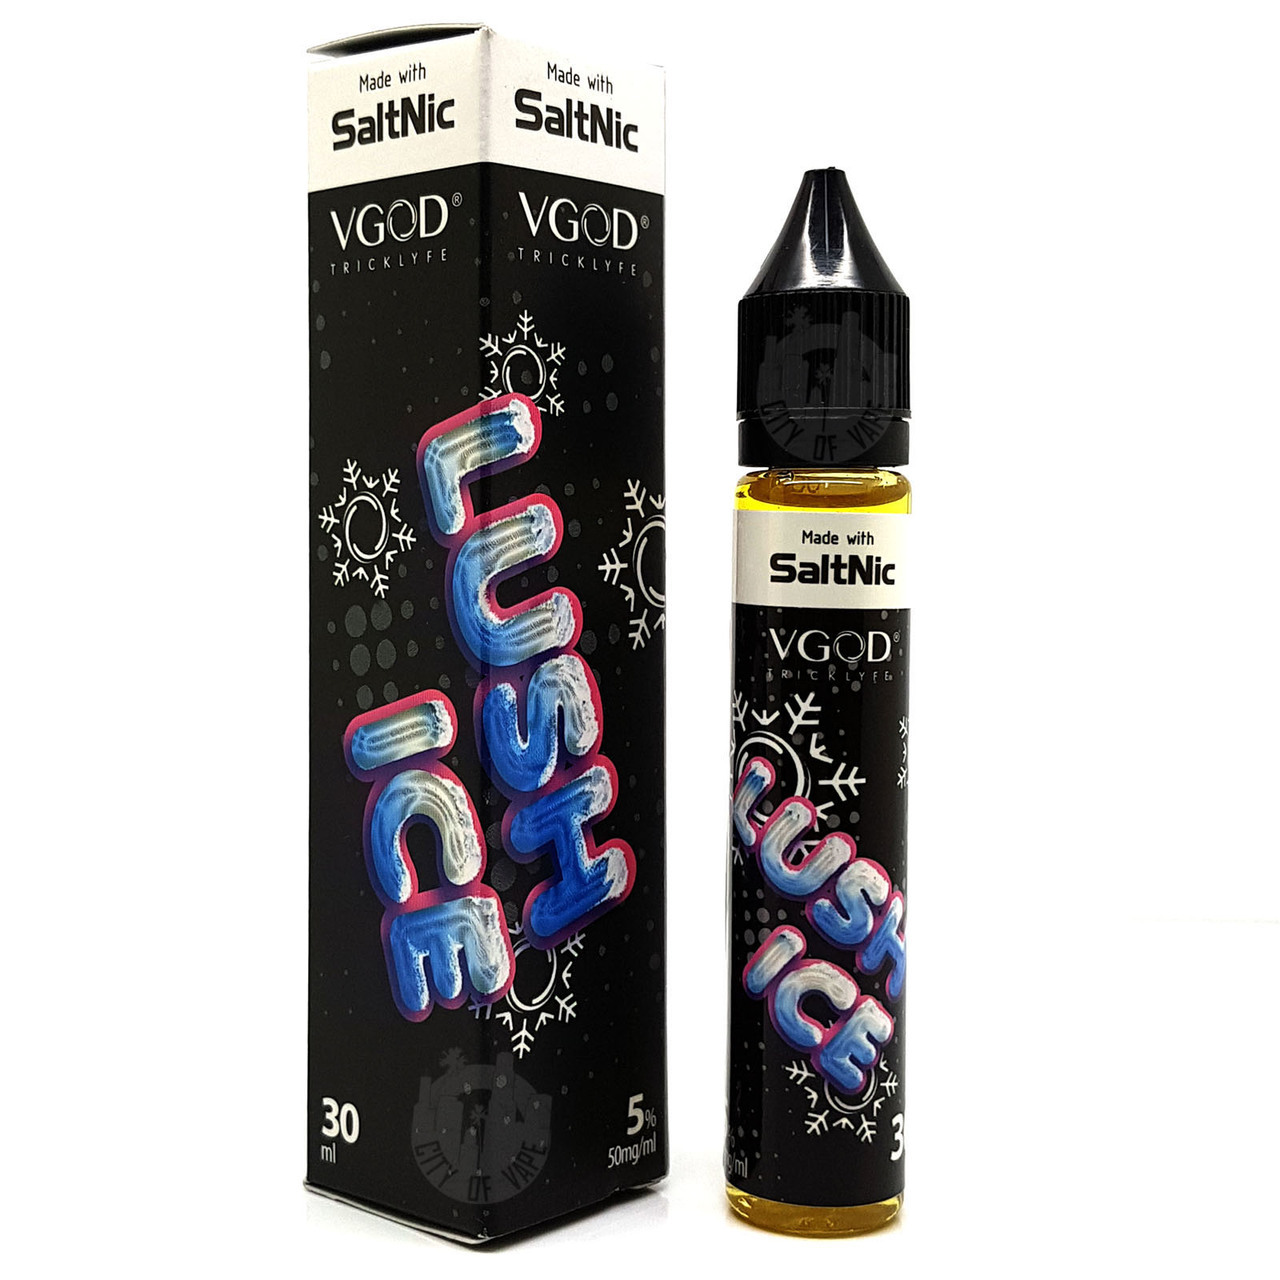 Lush Ice by VGOD SaltNic - 30mL